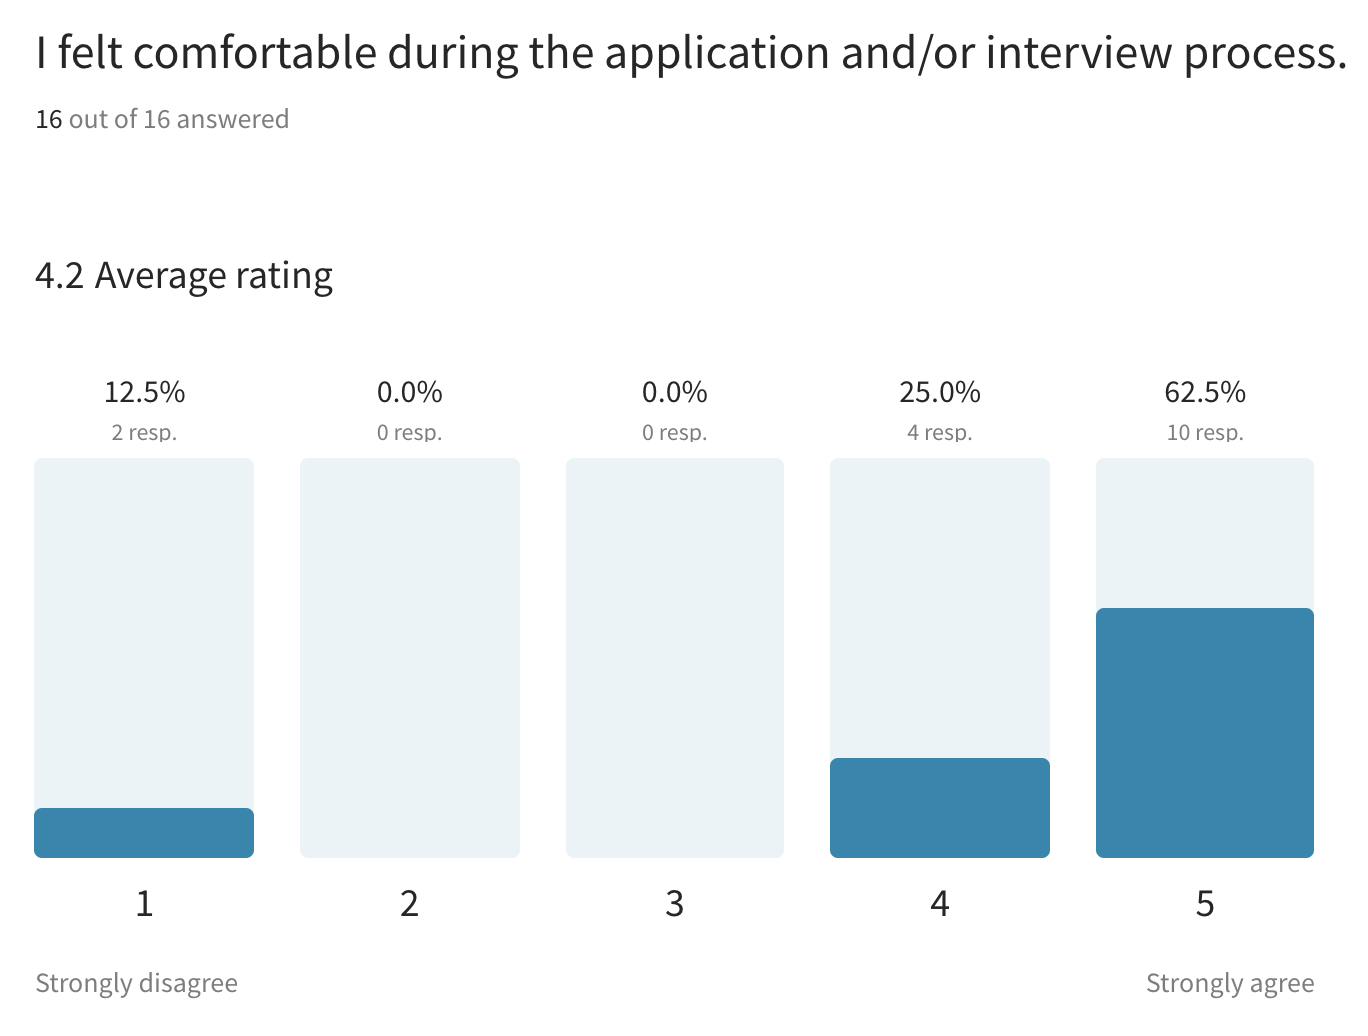 A screenshot of the candidate experience survey results which shows a bar chart illustrating a majority of respondents felt comfortable during the interview process.